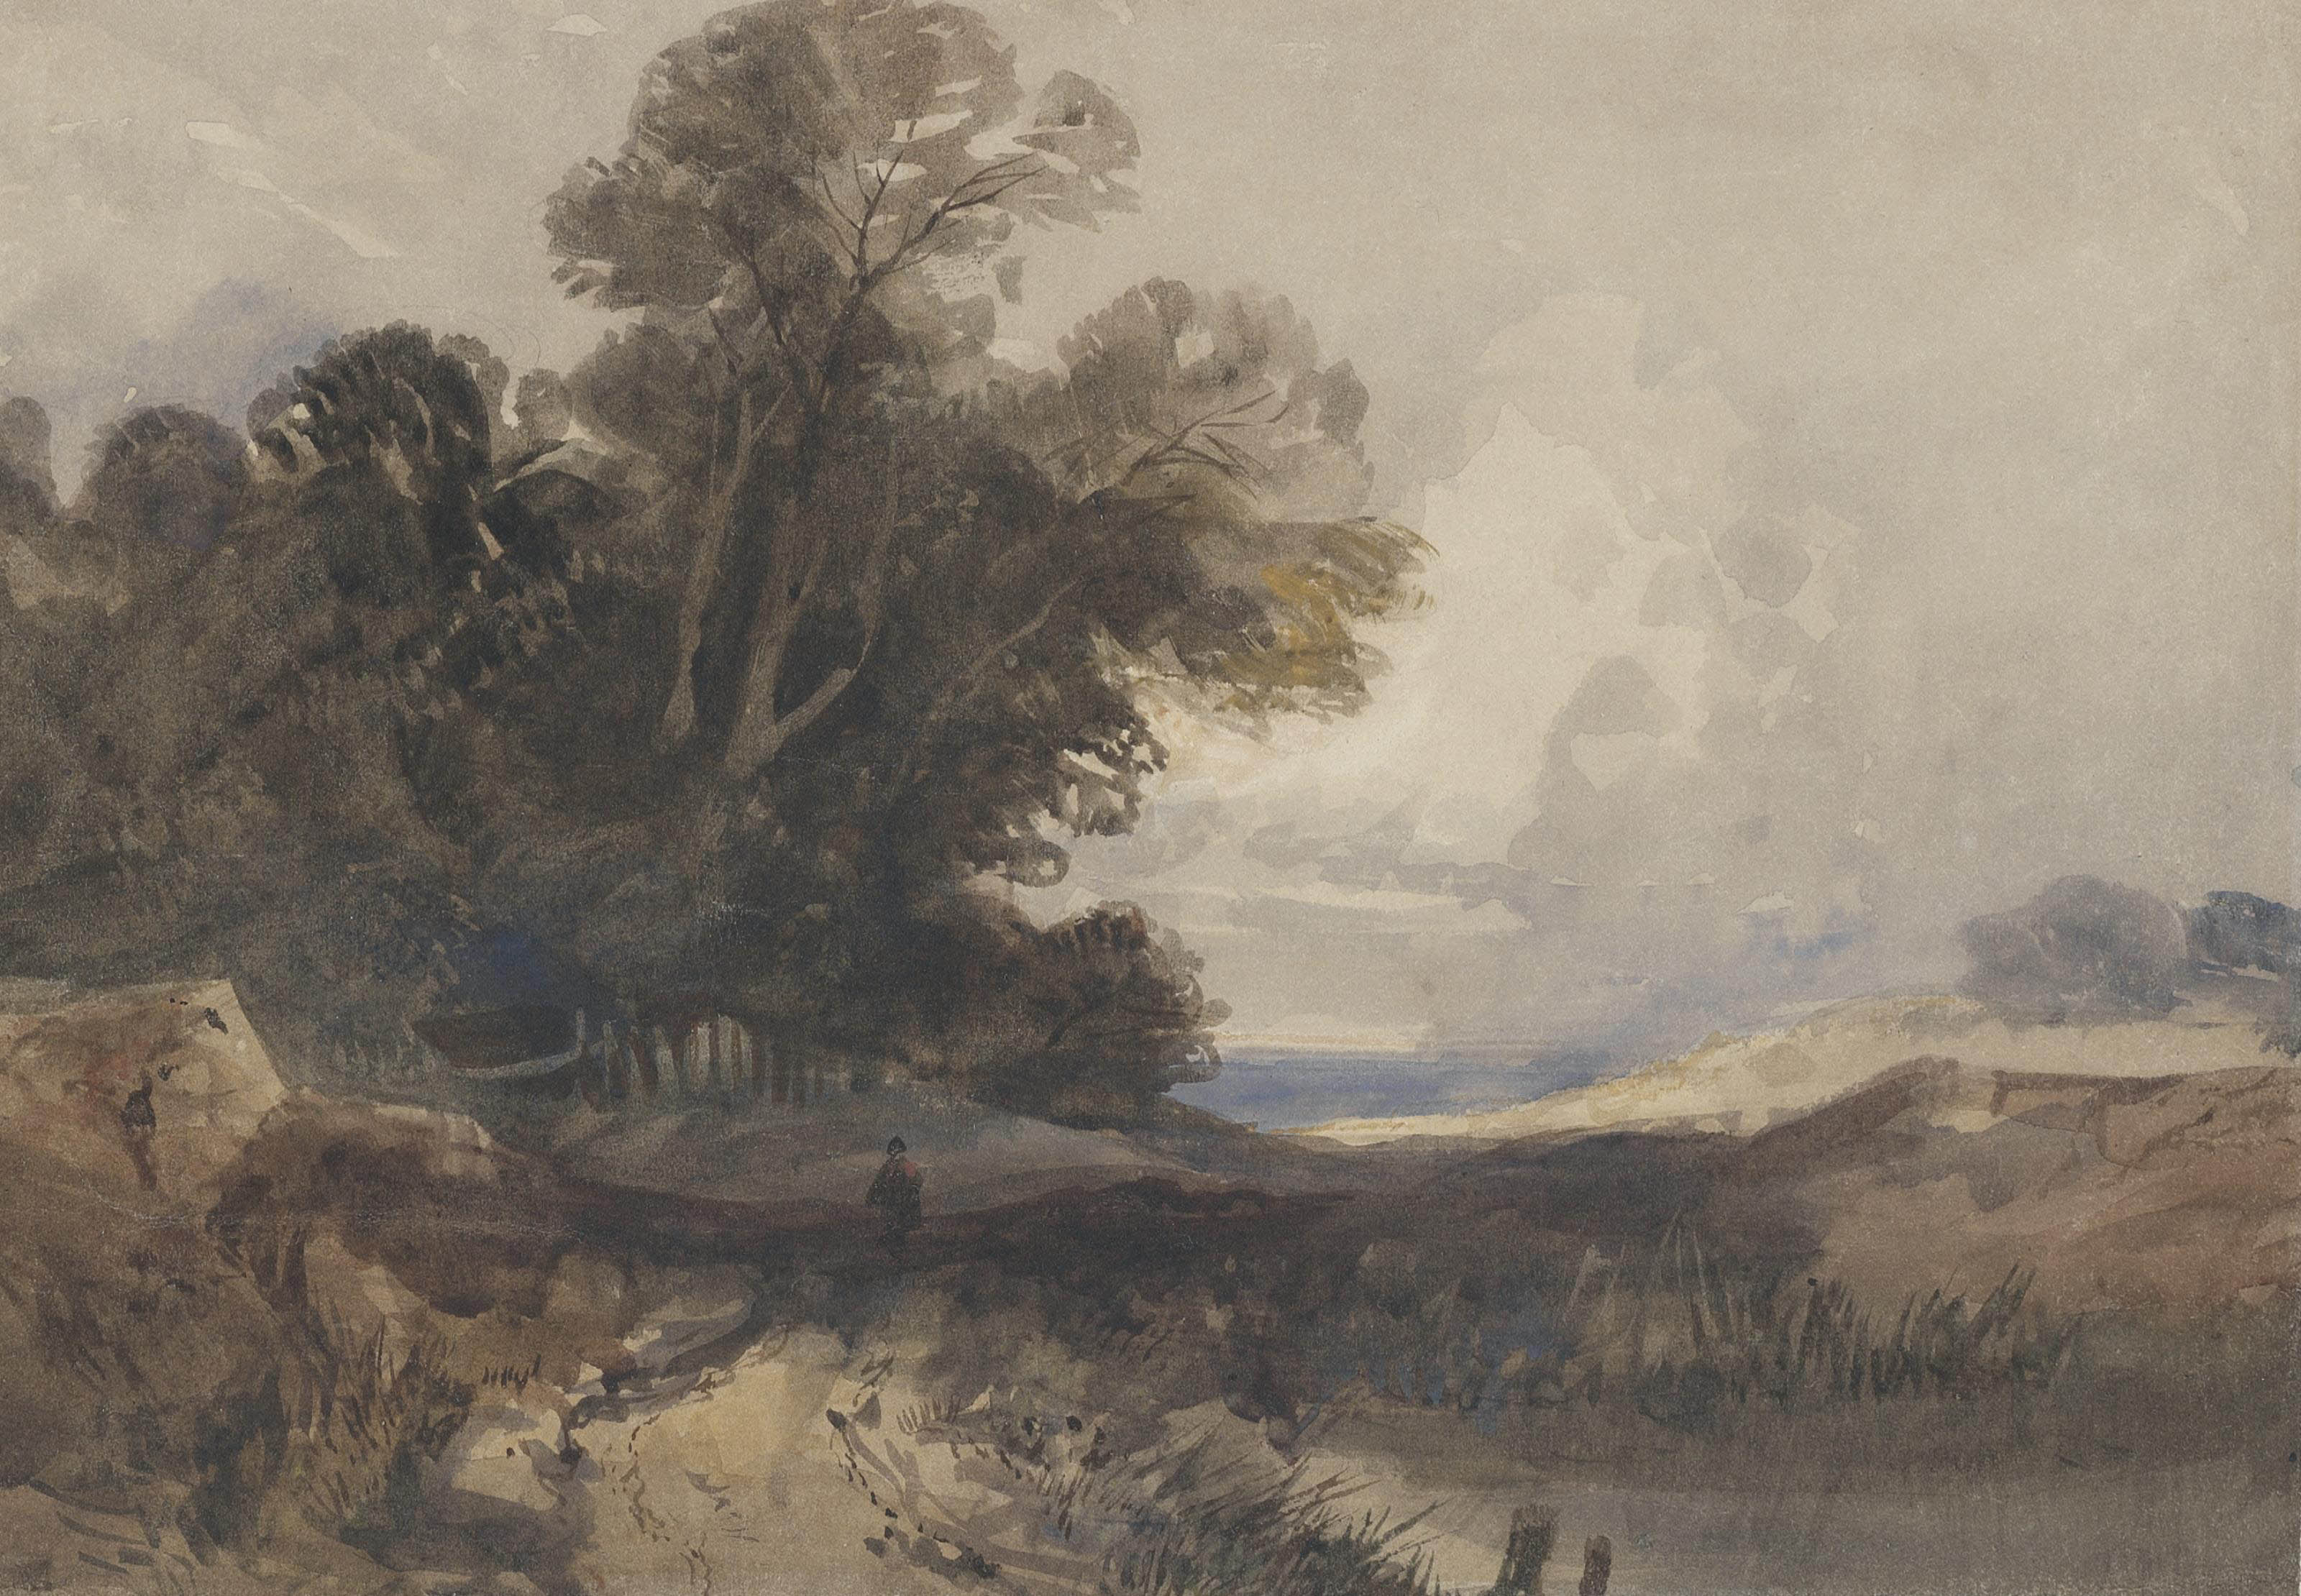 A traveller in an extensive wooded landscape